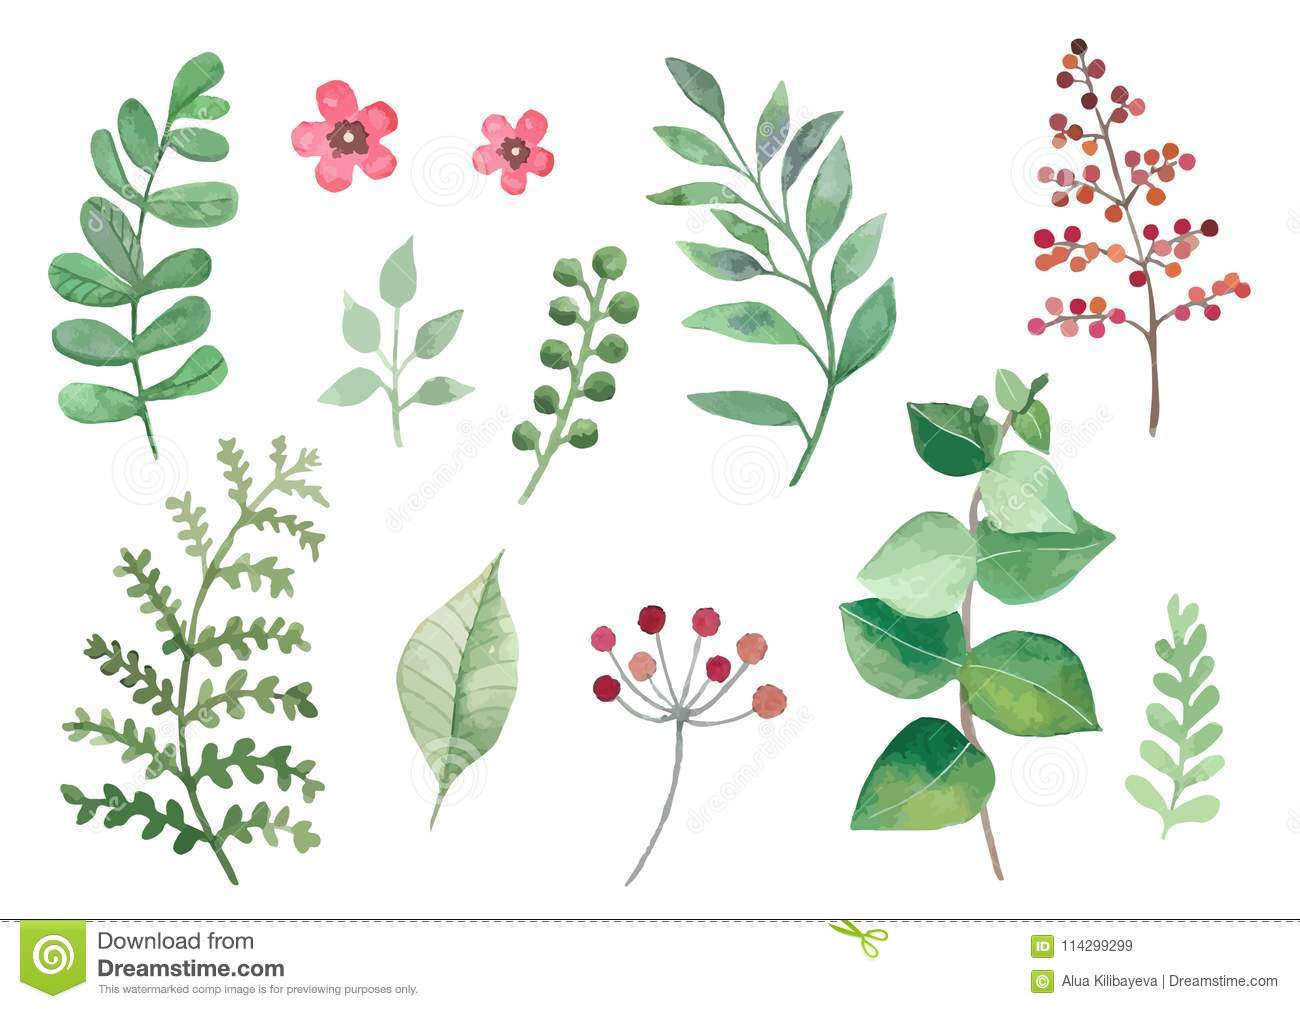 Flowers and plants set watercolour vectors leaves and branches